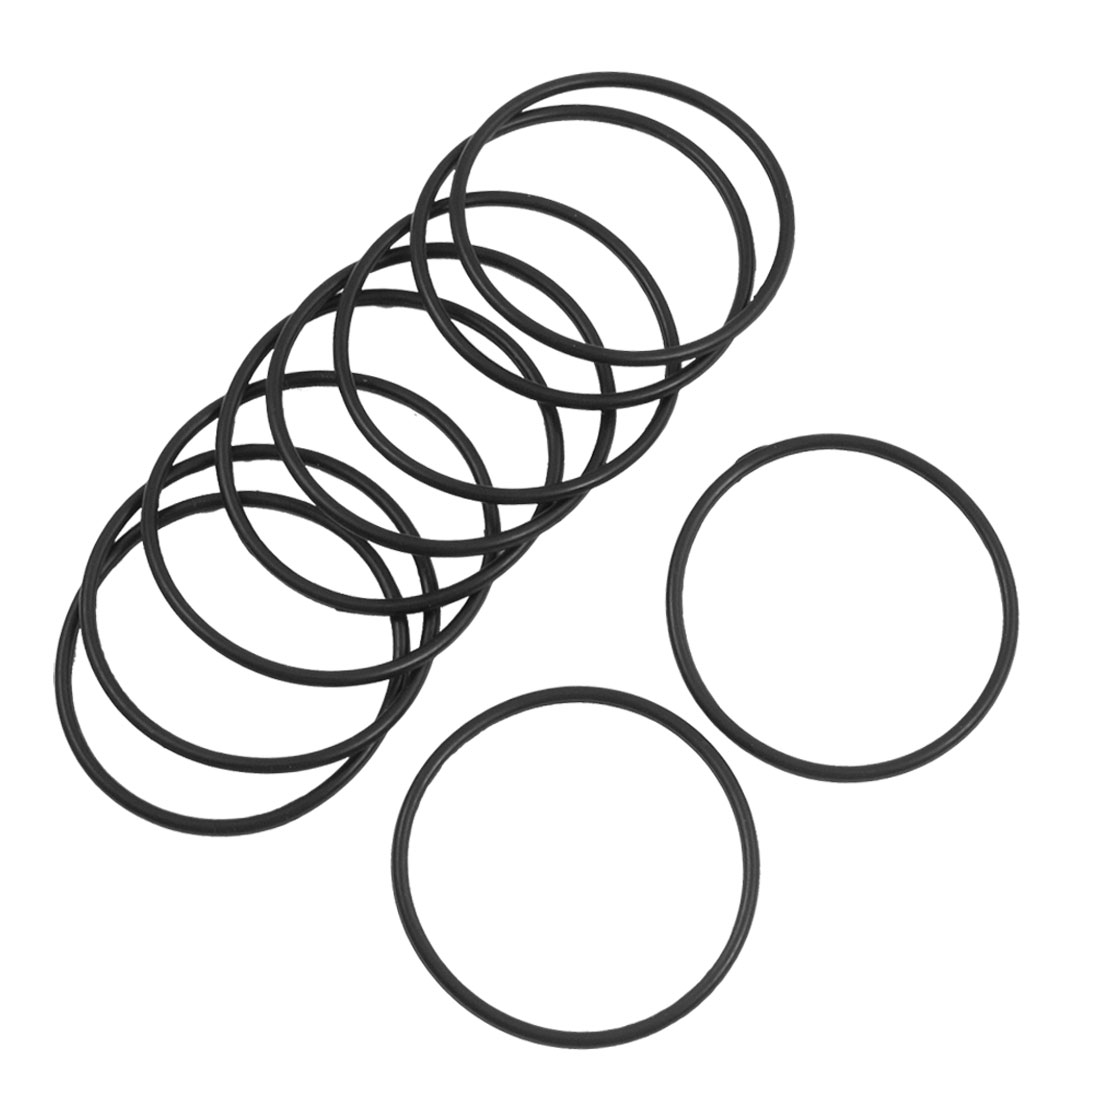 Uxcell 10 Pcs 2Mm Flexible Filter Rubber O Ring Seal Black Id . | 35mm | 38mm | 42mm | 46mm | 48mm | 49mm | 51mm | 53mm | 56mm image